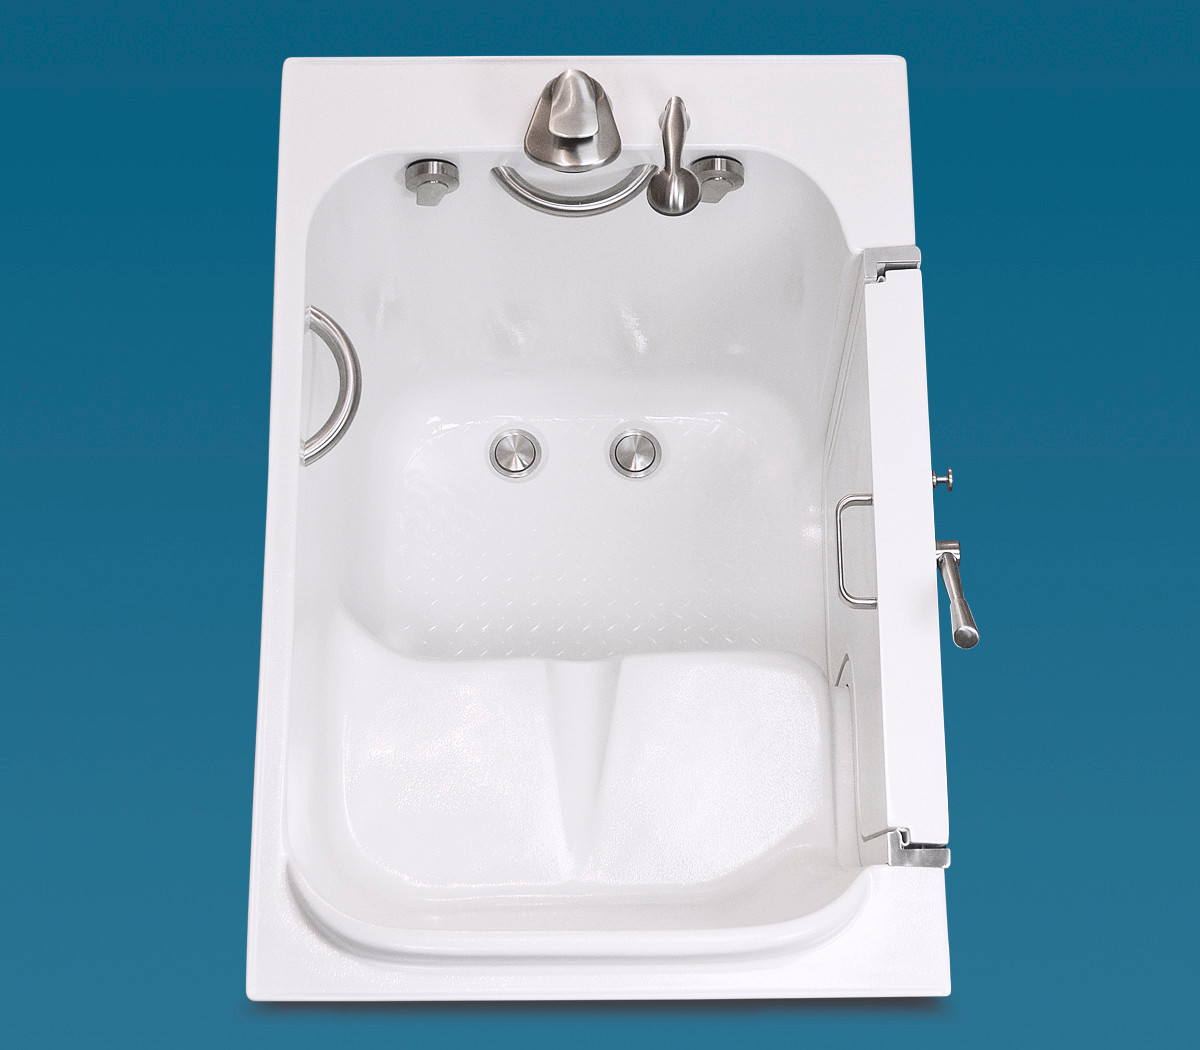 Out-Swing 5335 Walk-in Tub